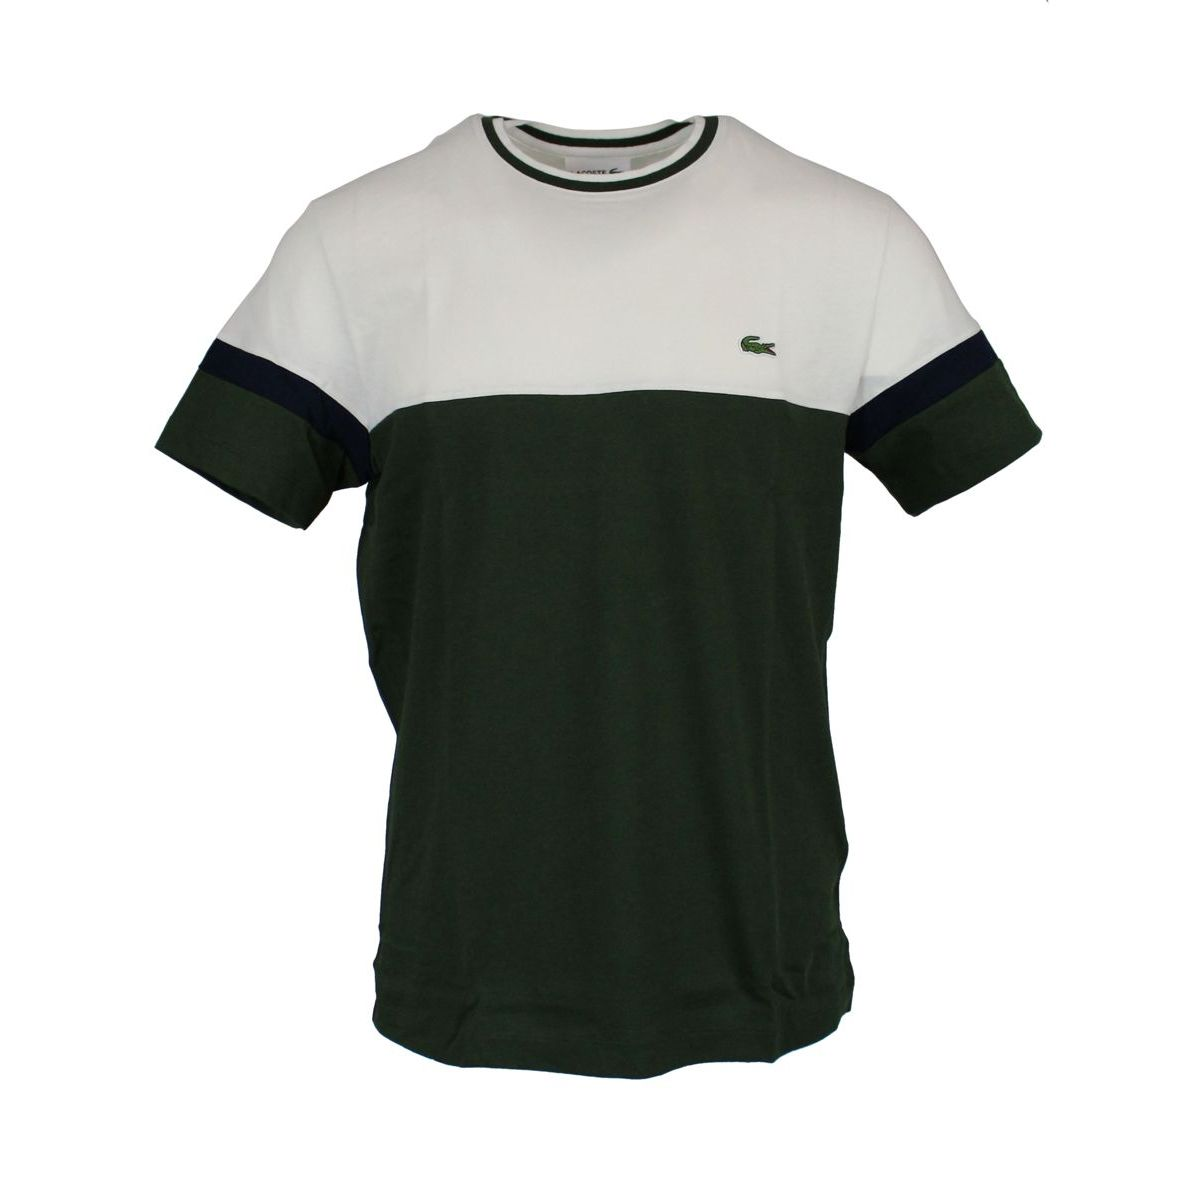 T-shirt in two-tone cotton Butter Lacoste